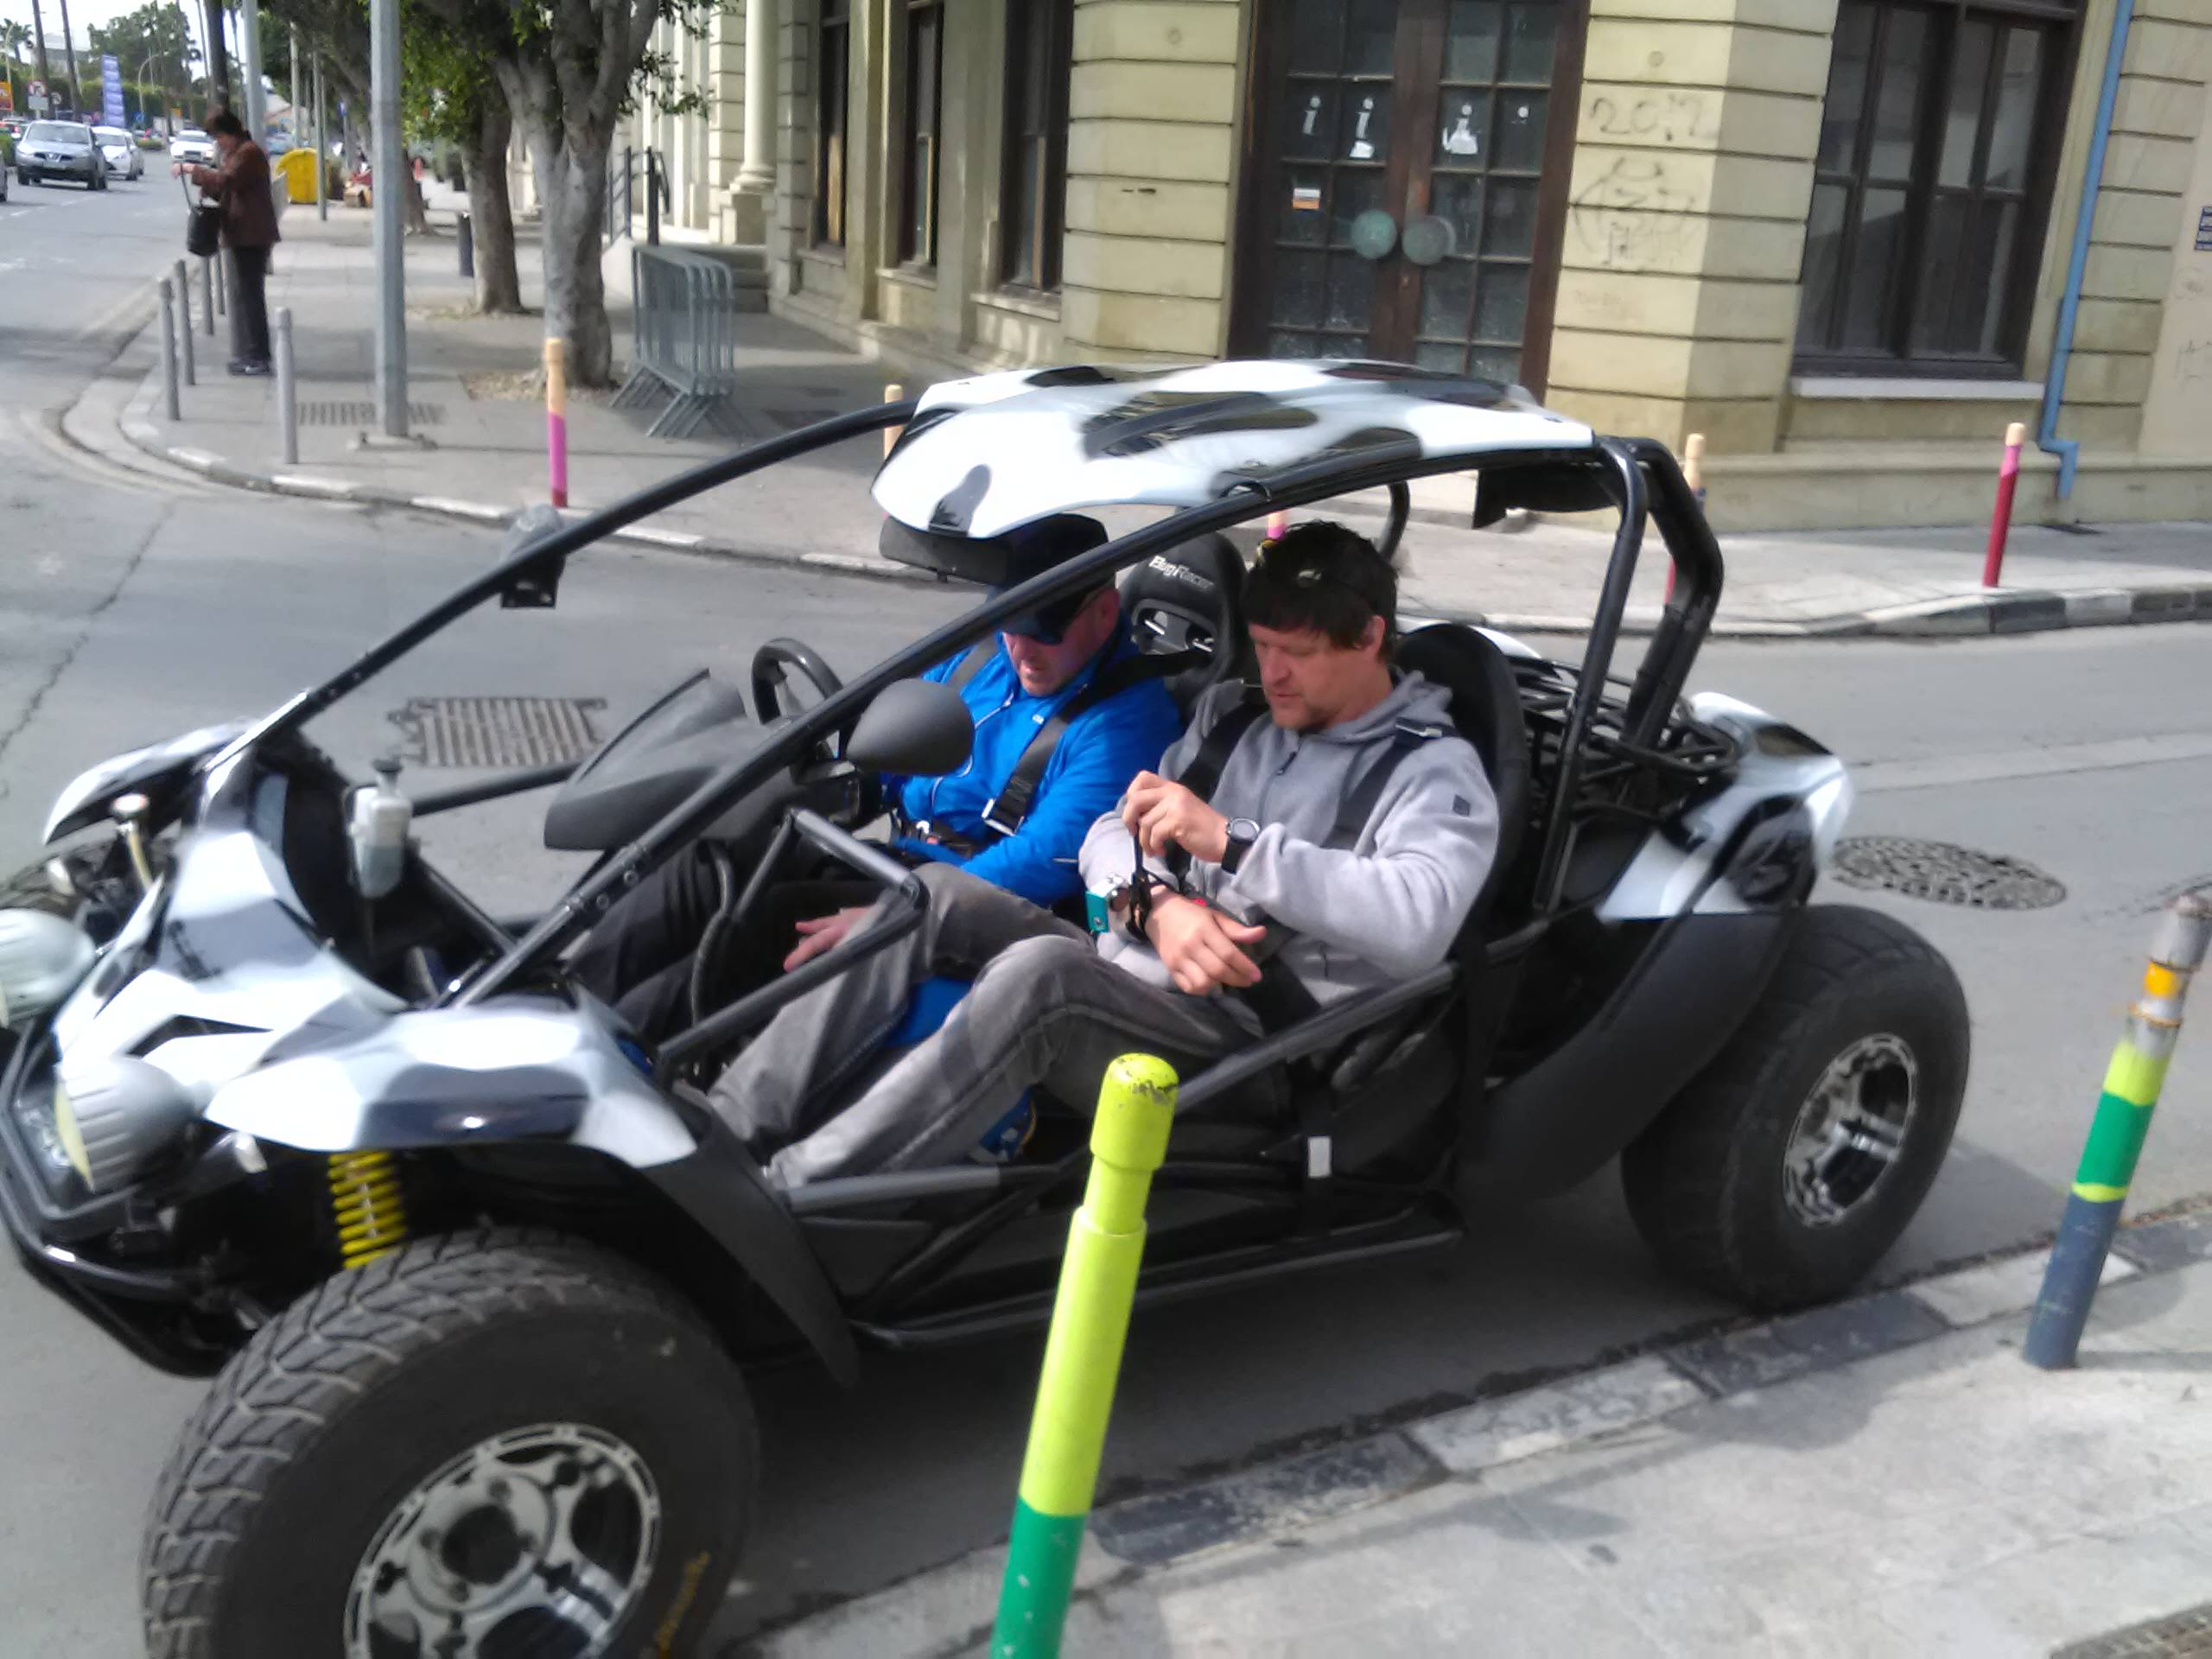 buggy hires in limassol